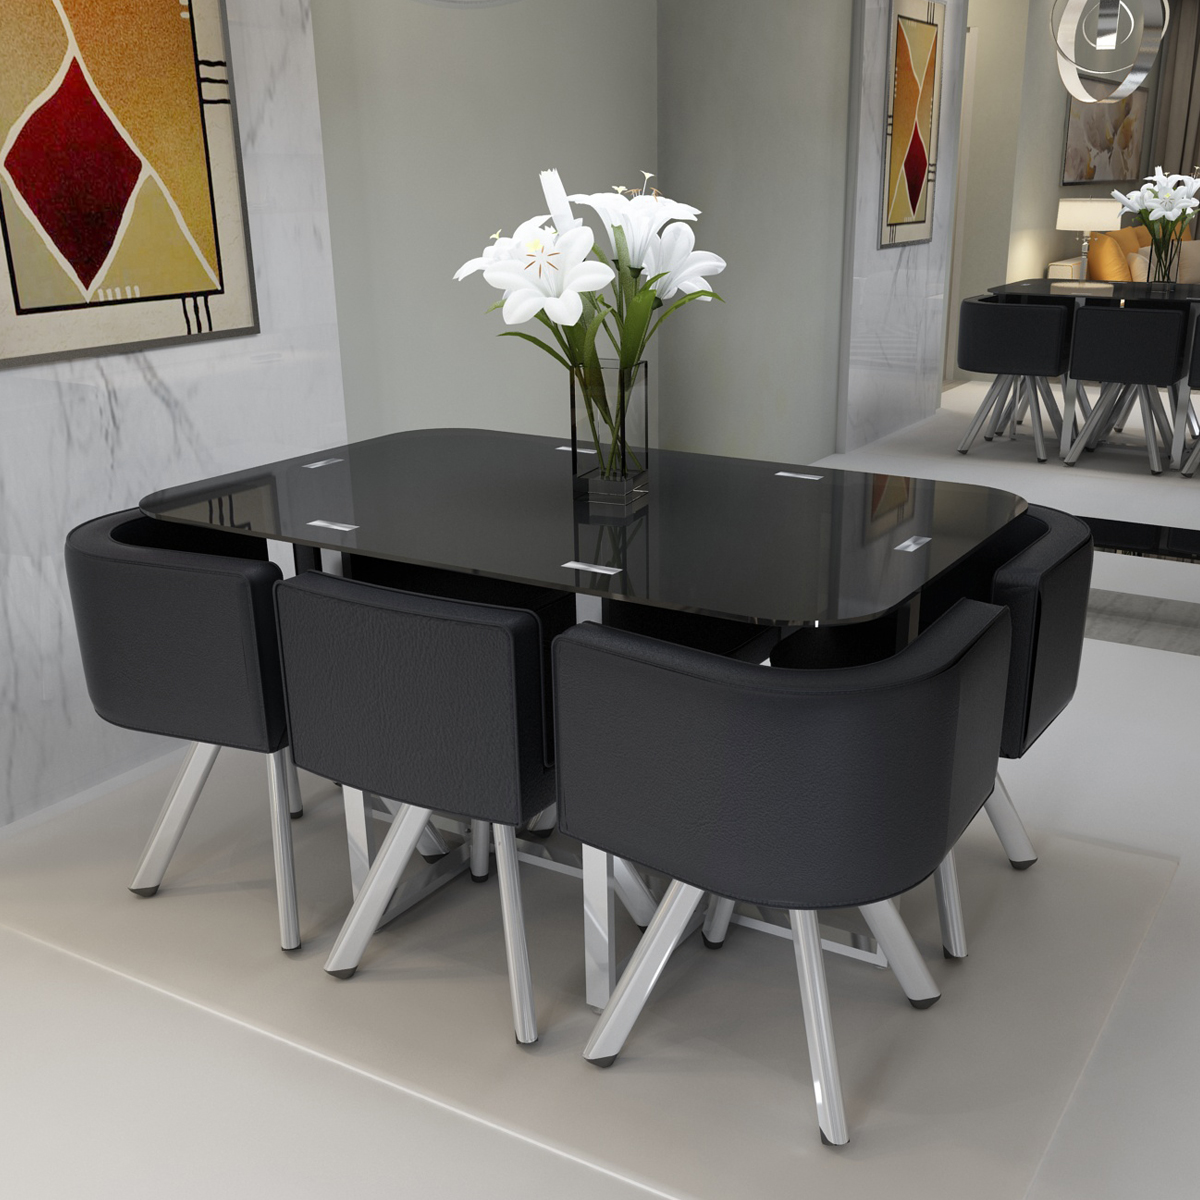 High Glass Dining Table W 4 6 Pu Leather Chairs Set Round